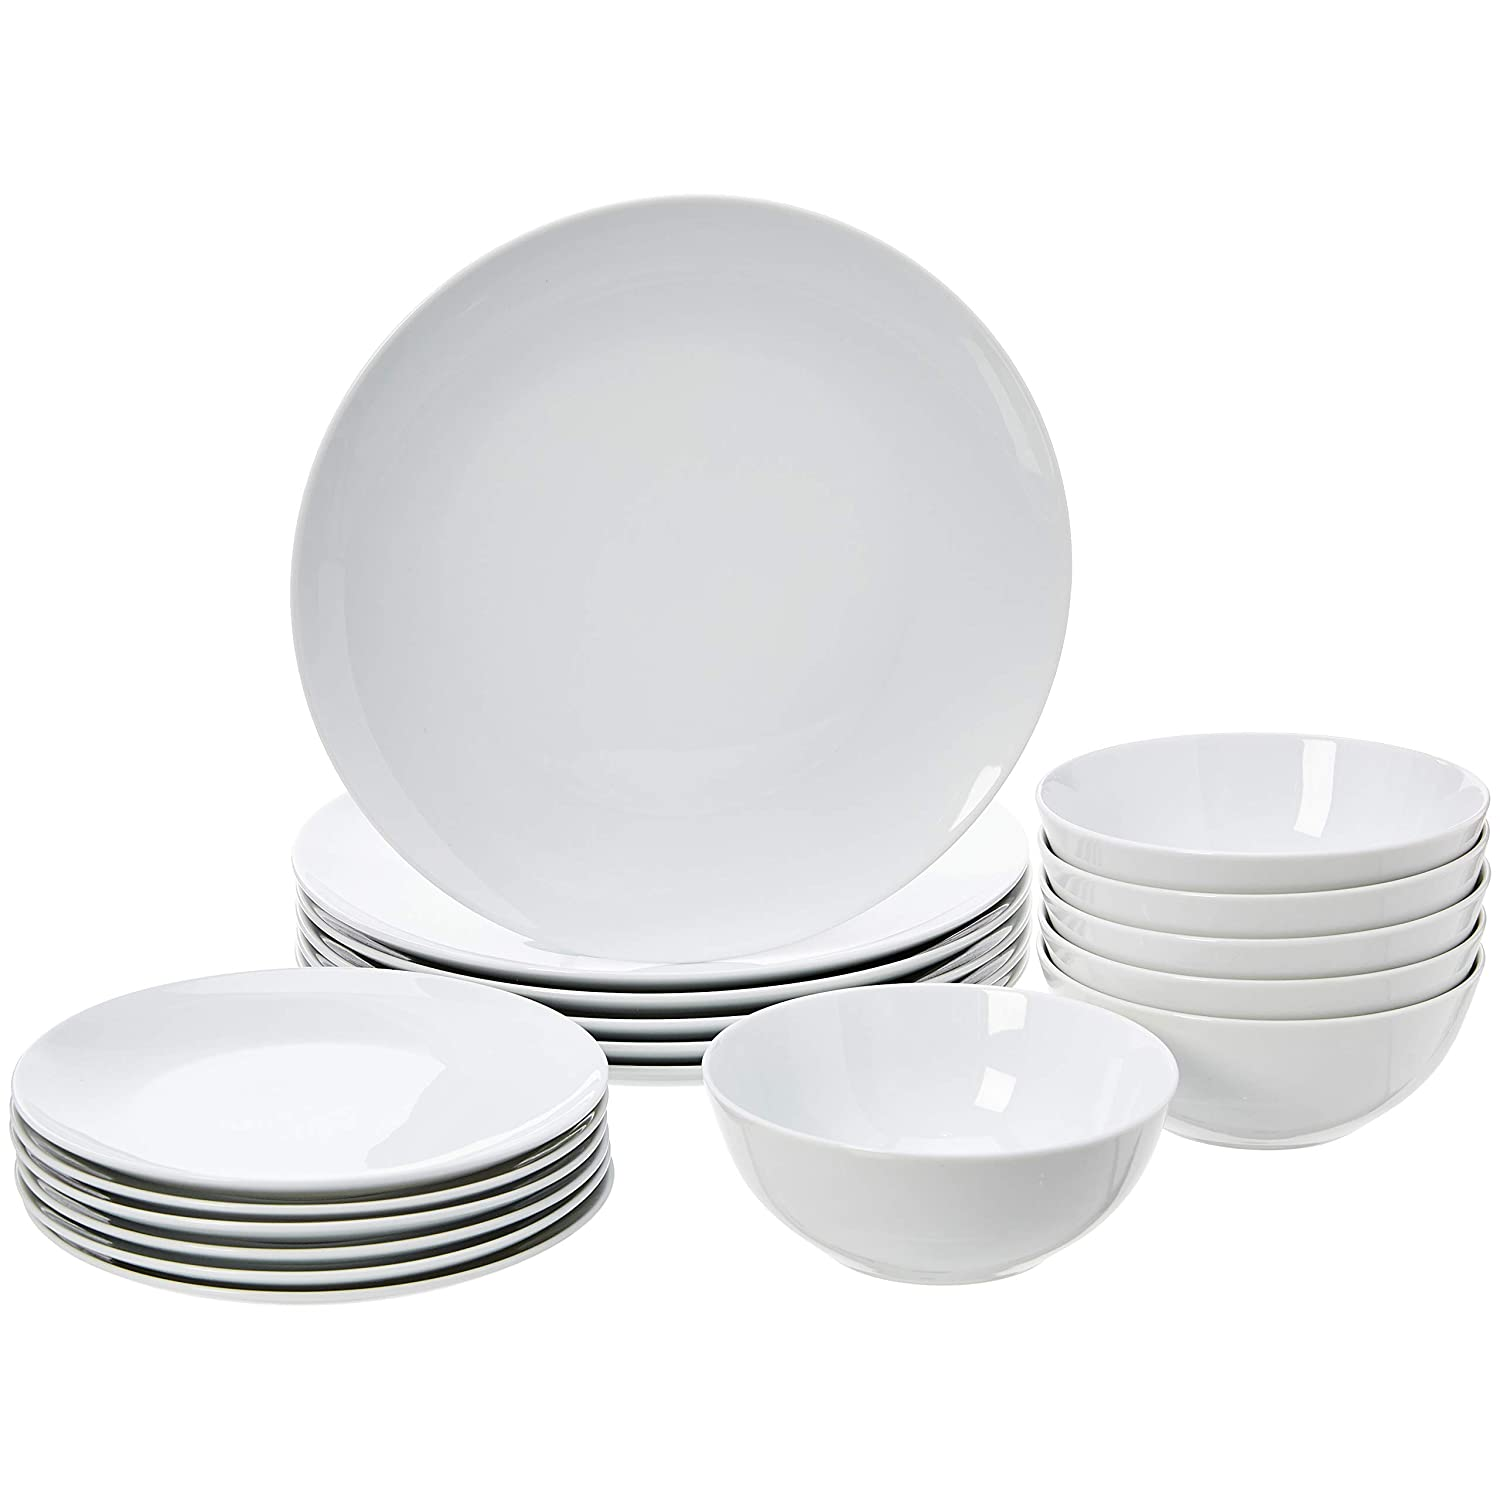 AmazonBasics 18-Piece Dinnerware Set - White Porcelain Coupe, Service for 6